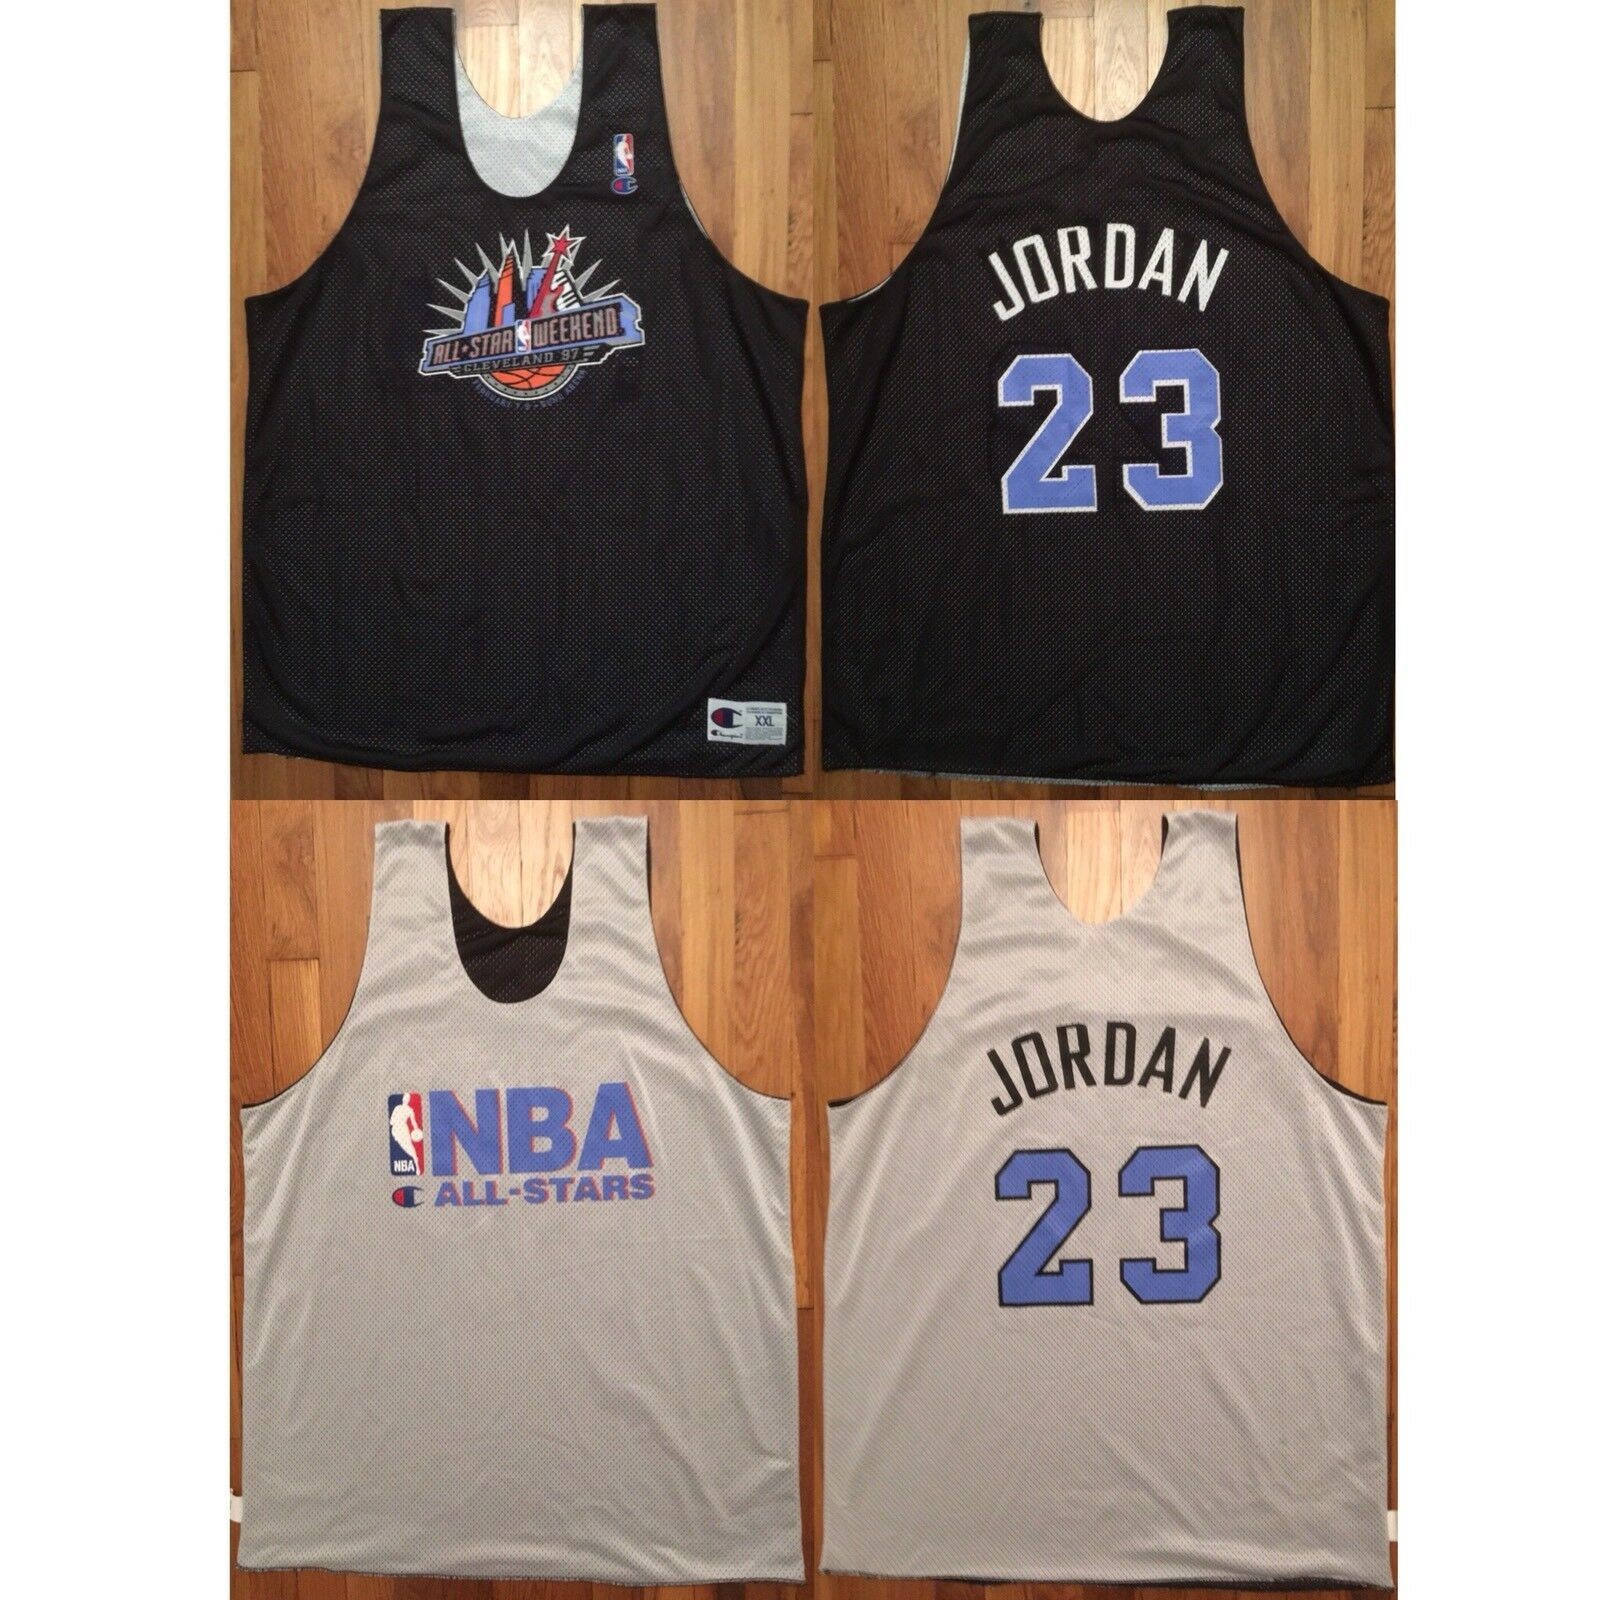 Primary image for 1997 NBA All-Star Chicago Bulls Michael Jordan Reversible Practice Jersey XXL